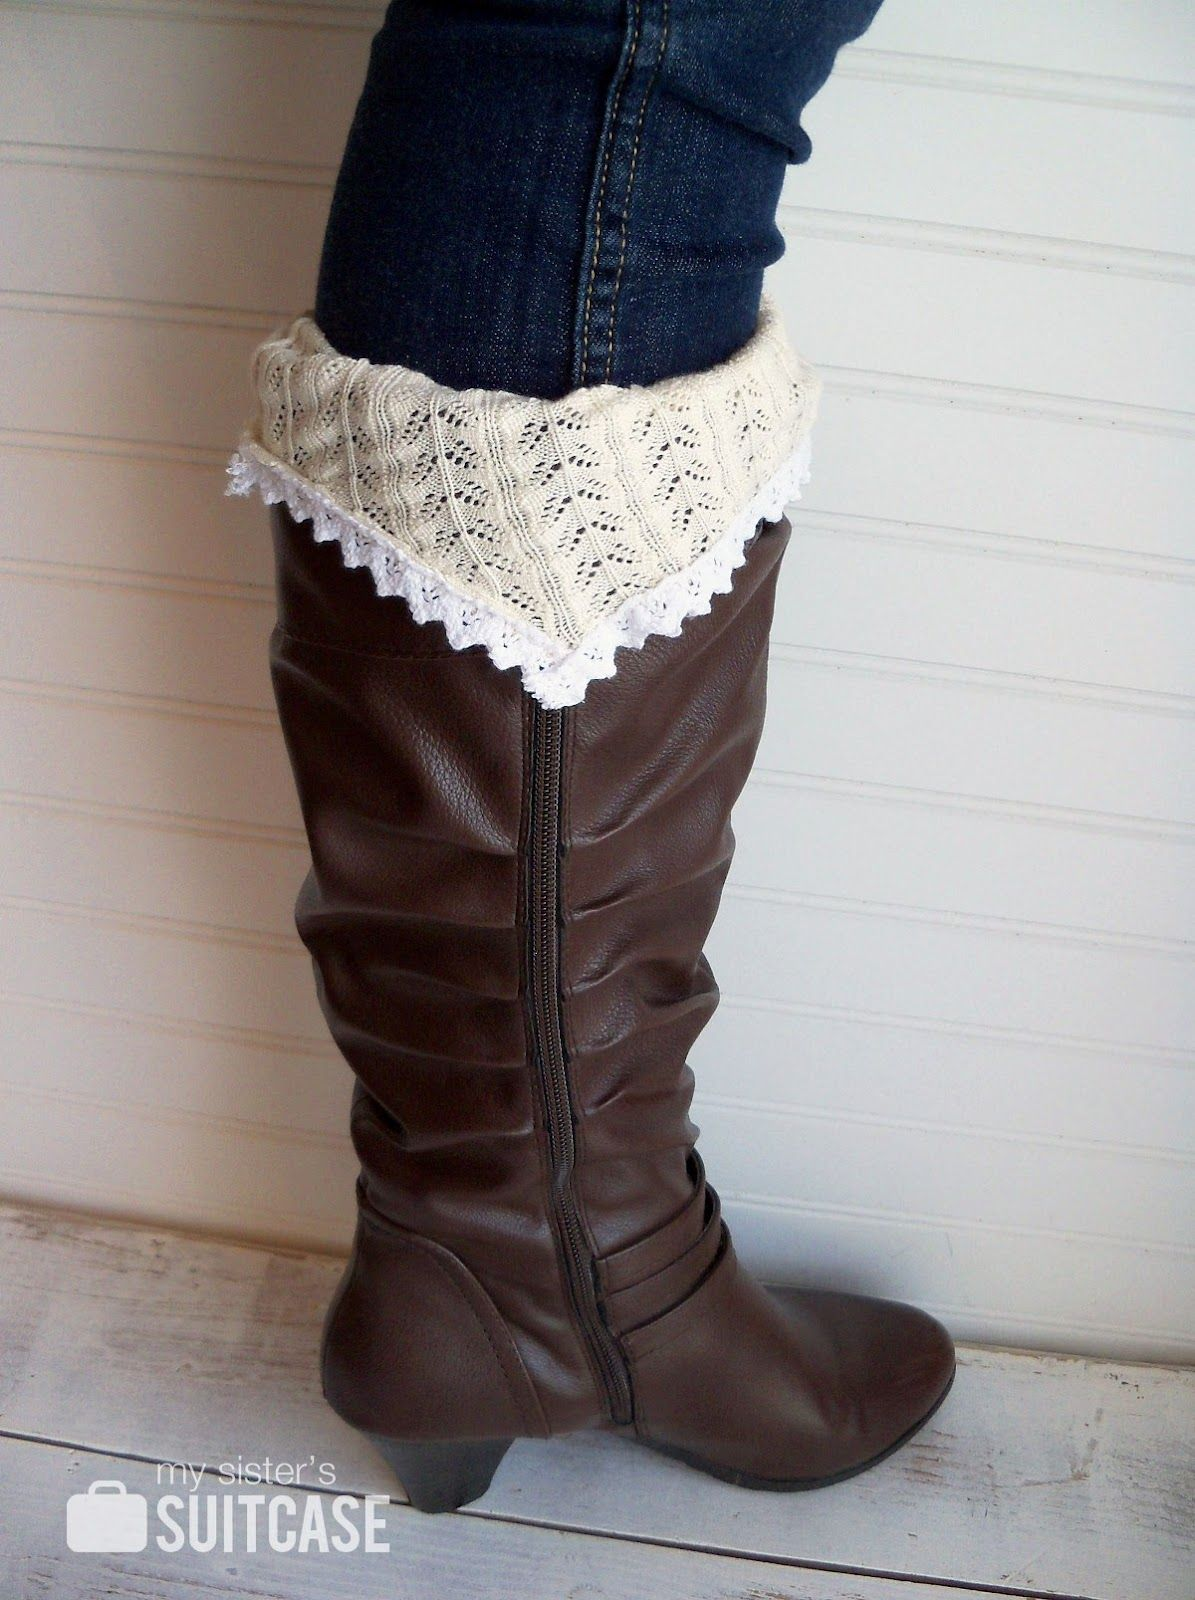 How to lace wear boot socks advise to wear for spring in 2019